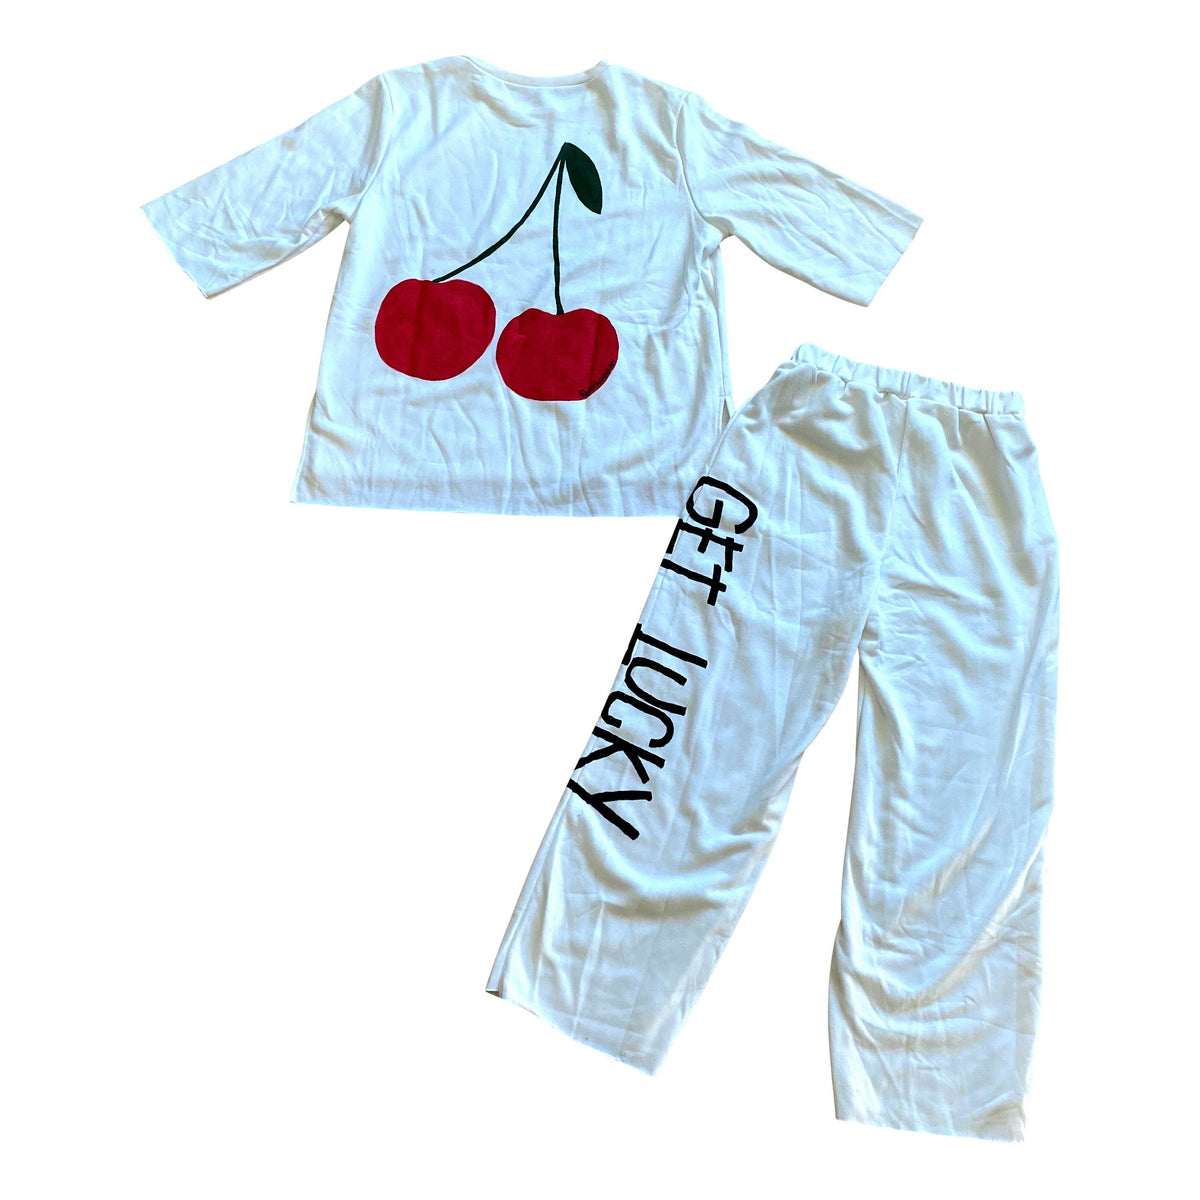 The perfect white sweatshirt & sweatpant loungewear set. Large cherries painted on back of sweatshirt, with GET LUCKY painted in black down leg of pant. Signed @wrenandglory on both top and bottom.